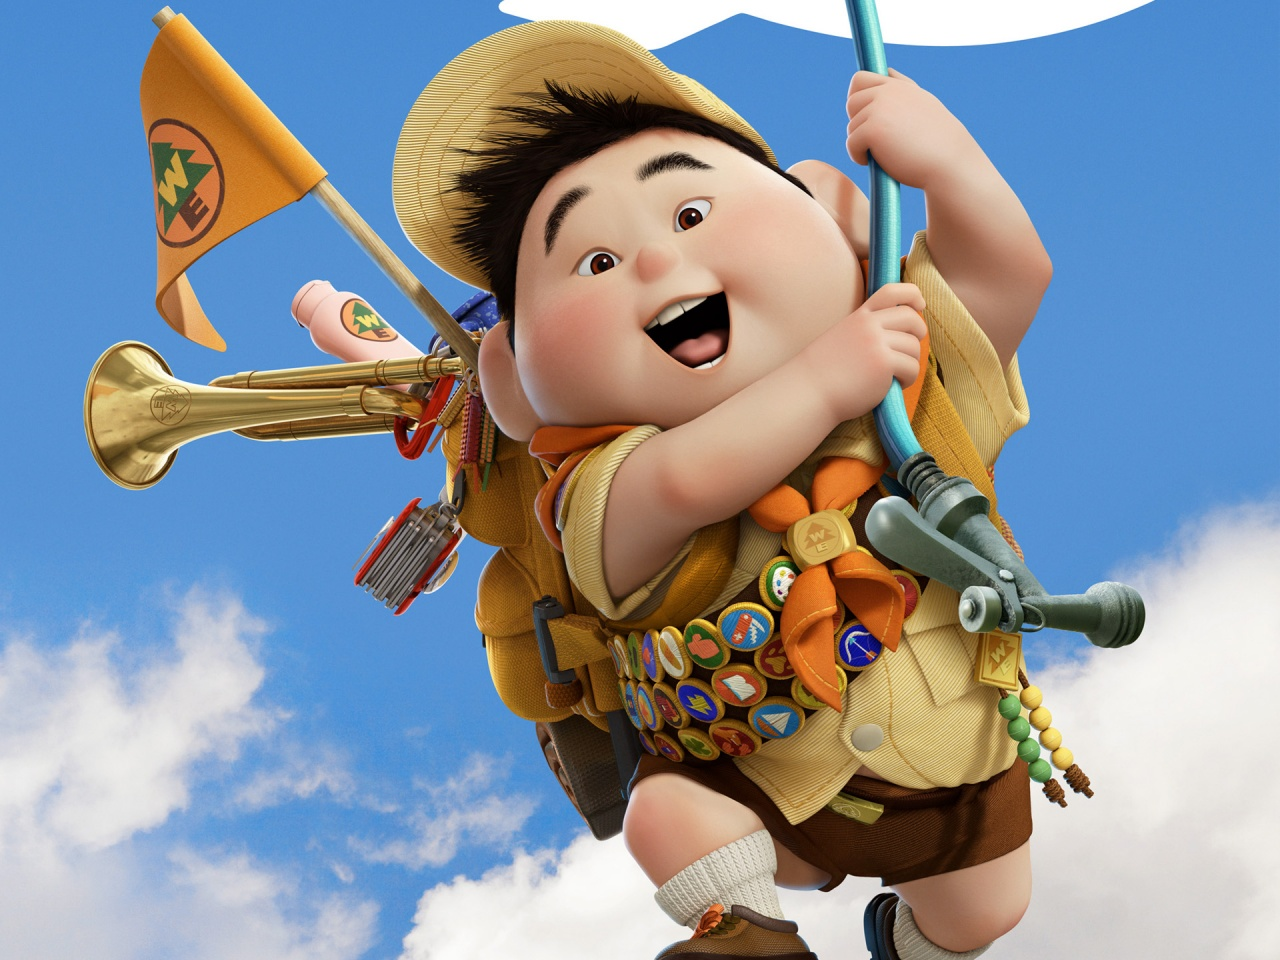 ... x 1200 1920 x 1440. Normal 5:4 Resolutions:1280 x 1024 Original. Description: Download Russell Boy in Pixar's UP ...